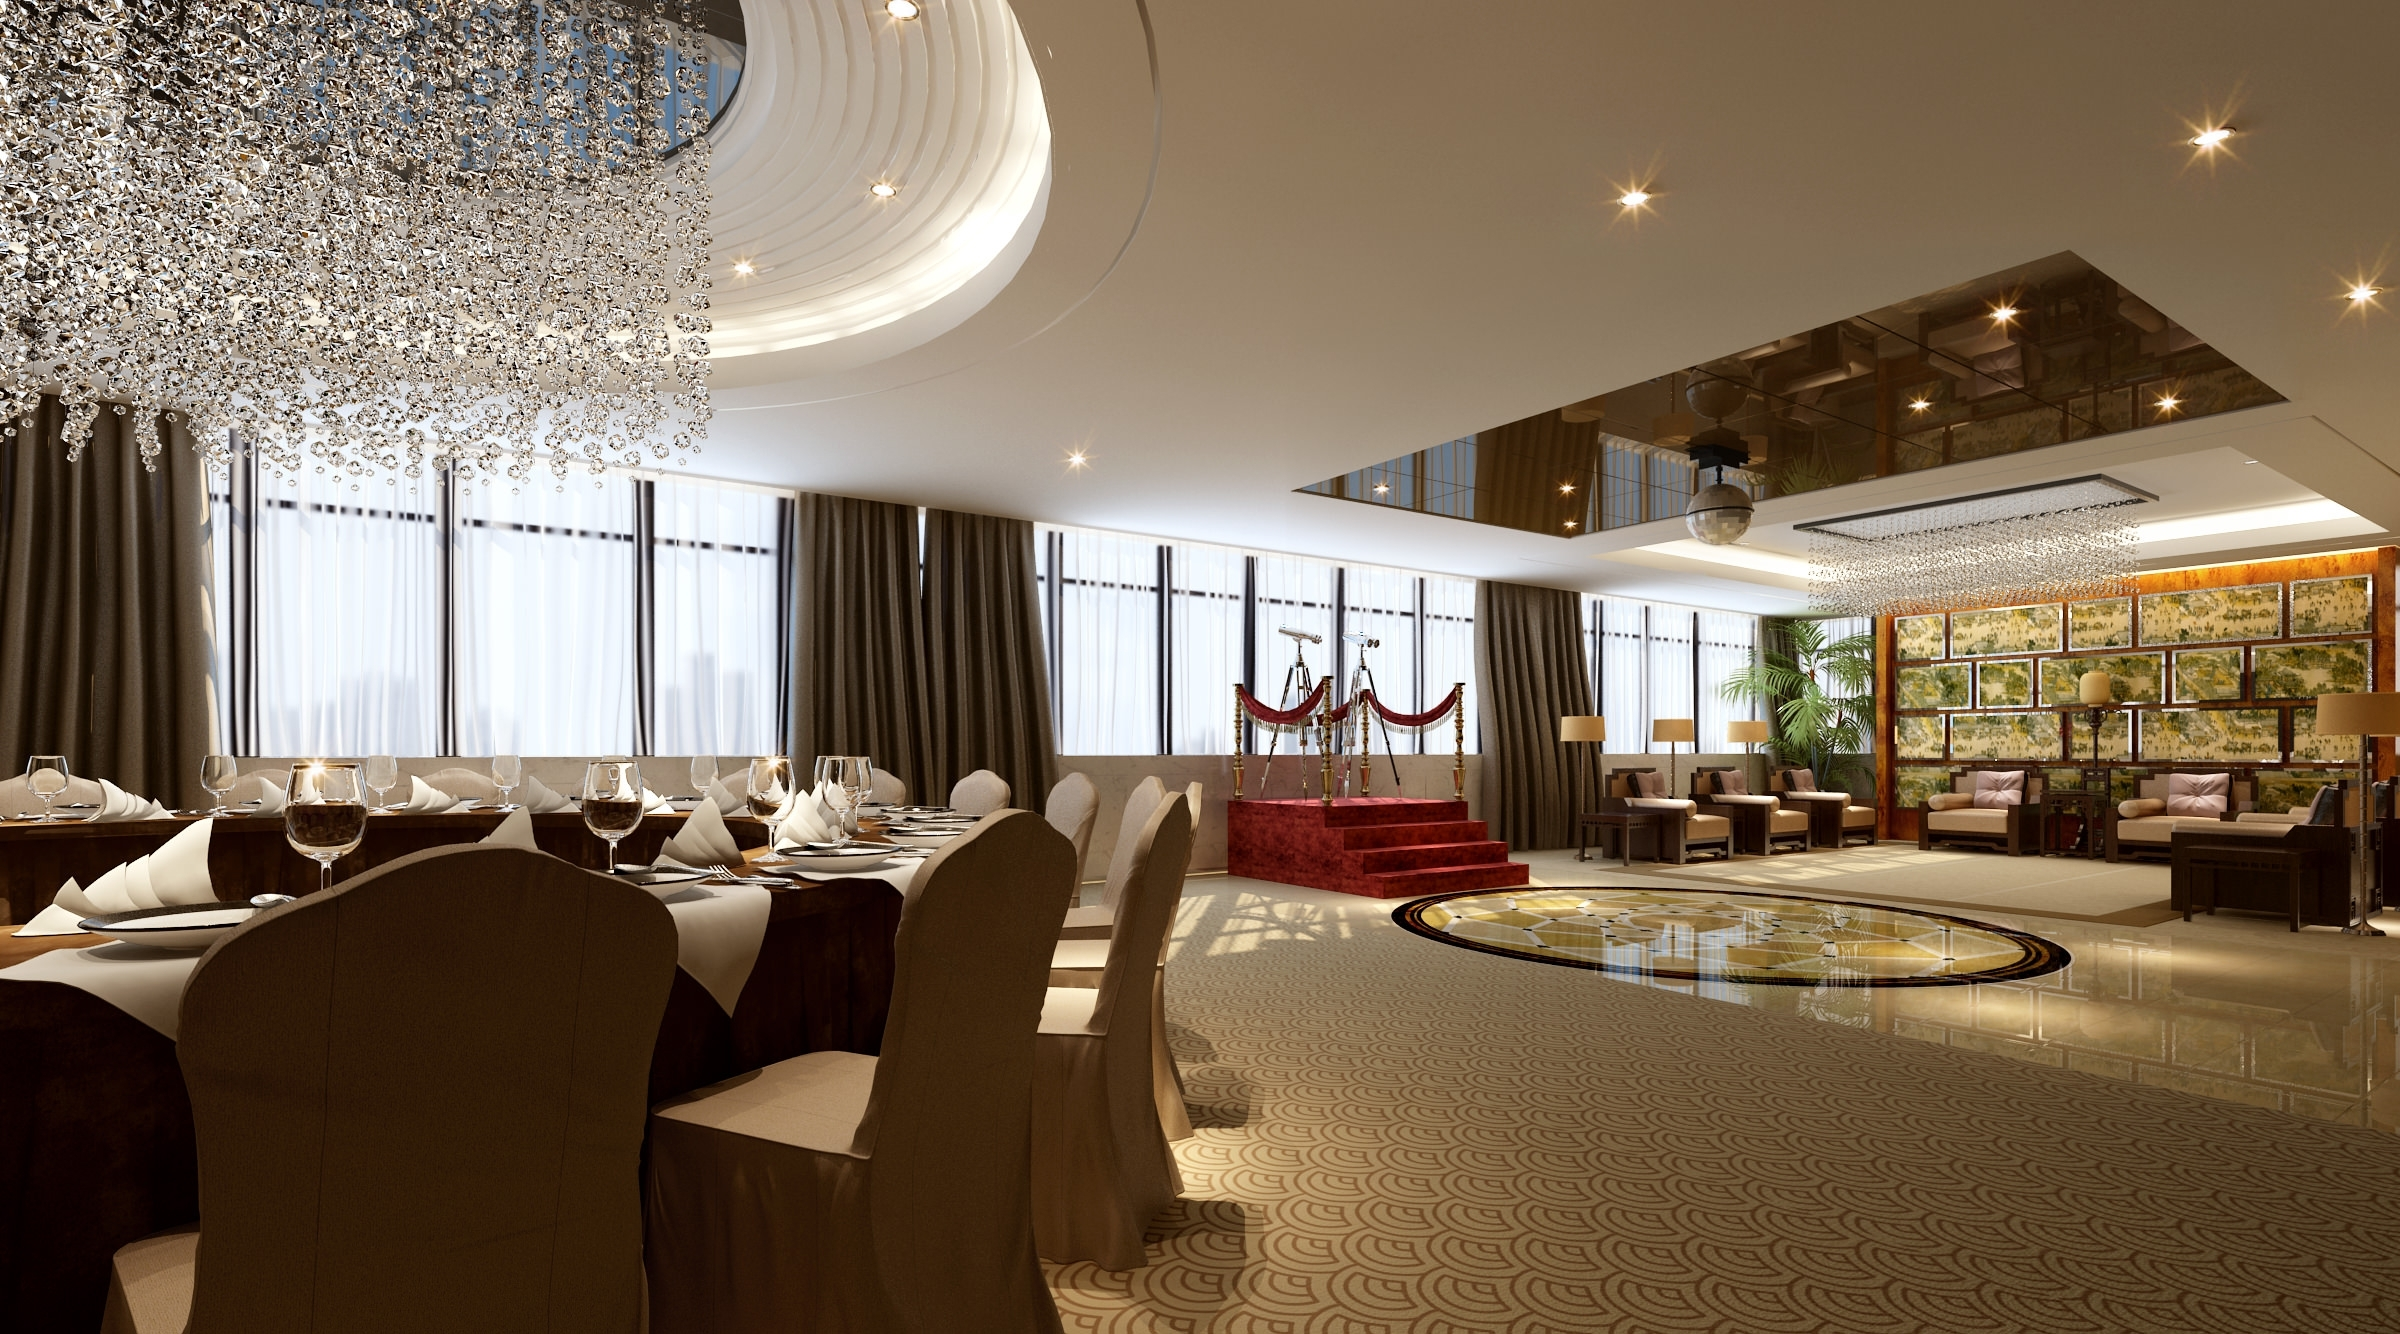 Well Known Restaurant Chandeliers Throughout High End Restaurant With Classy Chandeliers 3D Model Max (View 15 of 15)